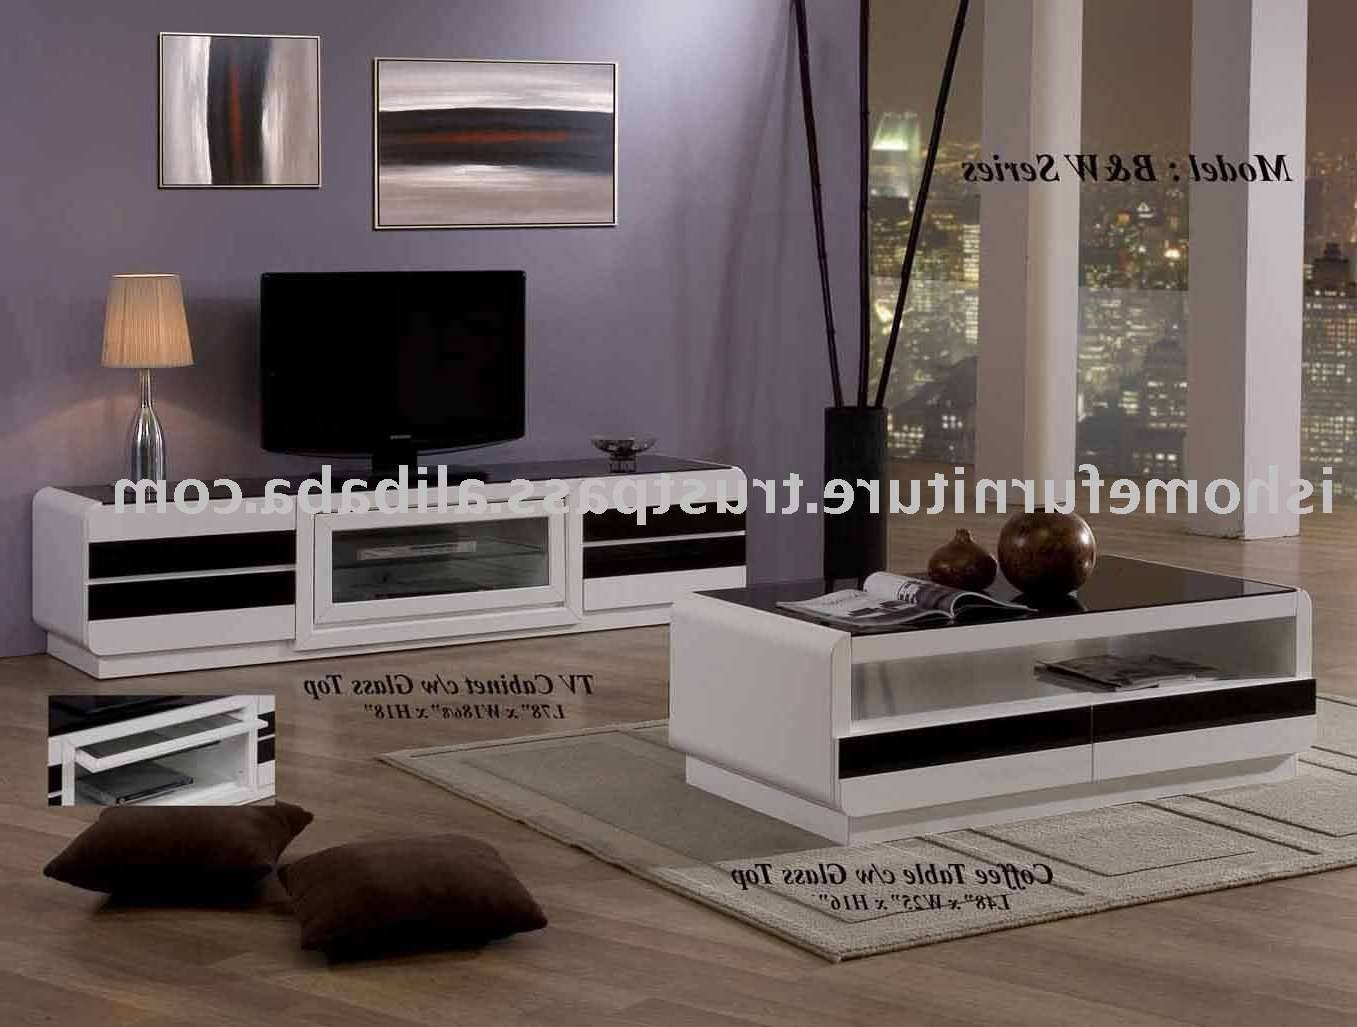 B&w Series – Coffee Table,tv Stand – Buy Home Furniture,coffee With Regard To Coffee Tables And Tv Stands (View 2 of 15)